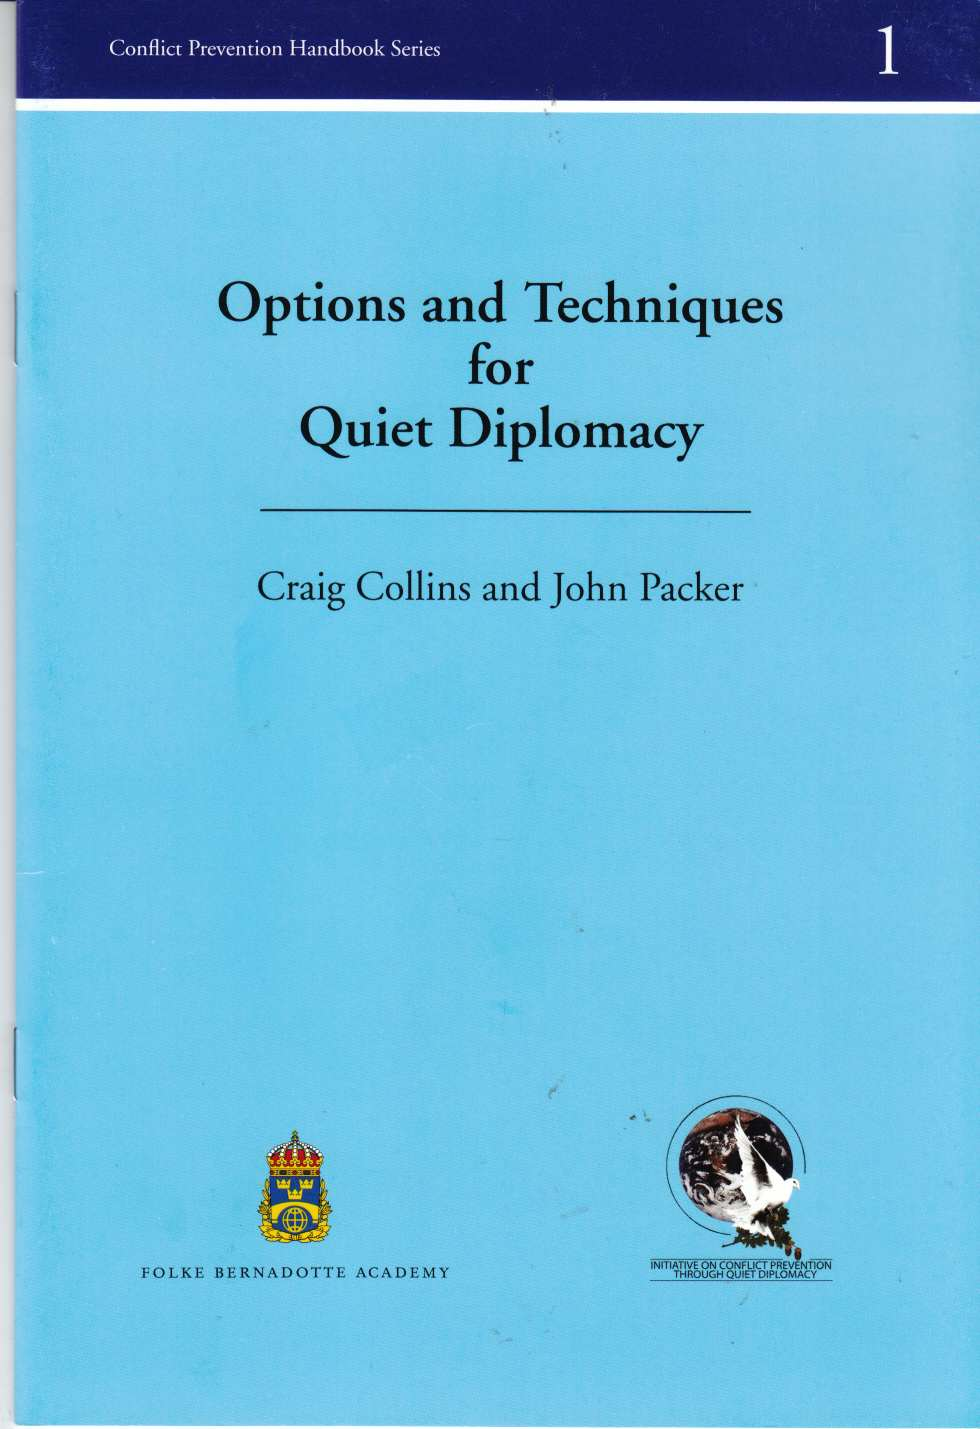 Image for Option and Techniques for Quiet Diplomacy